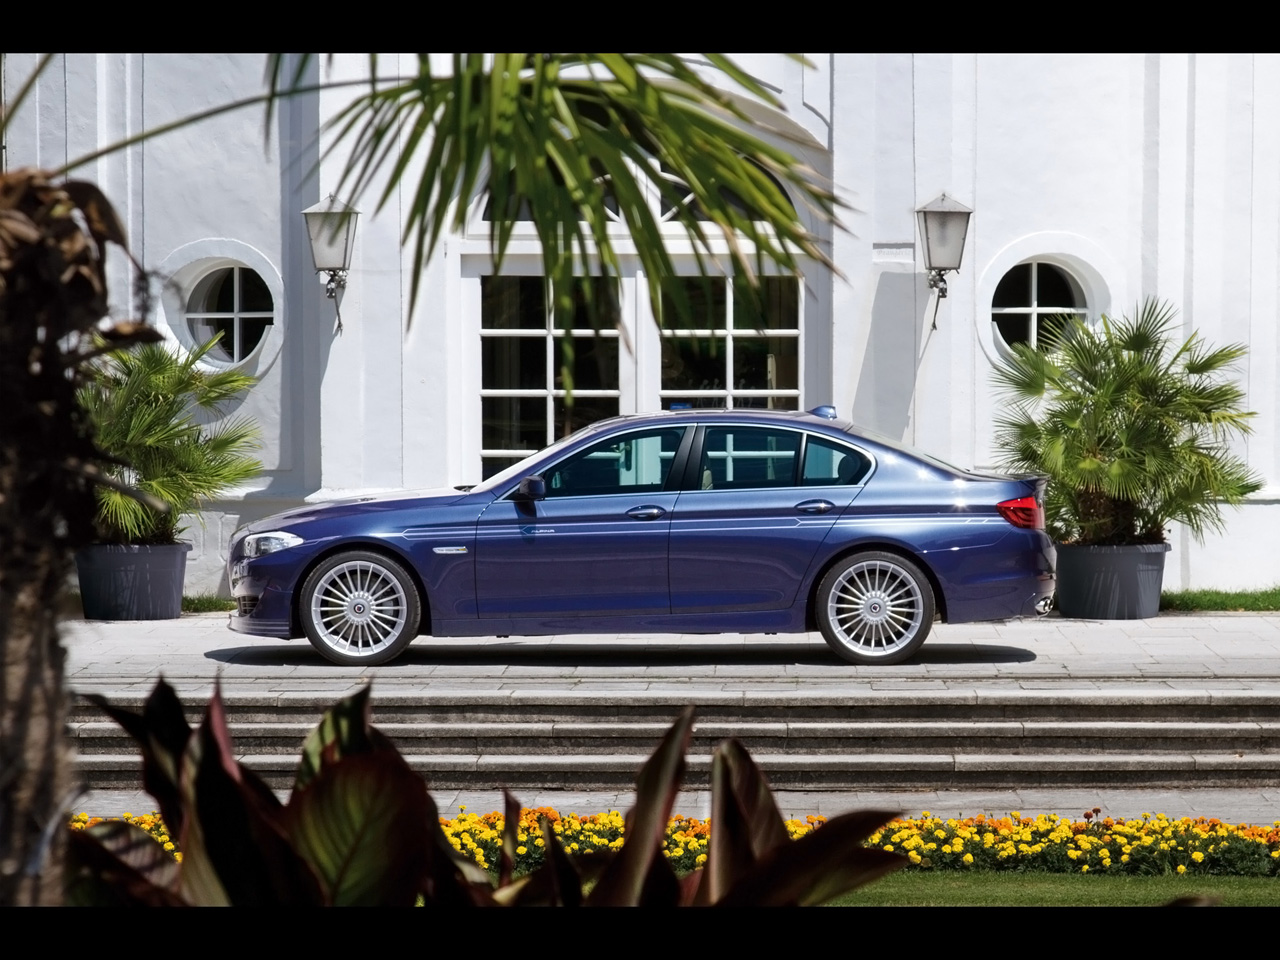 BMW b5 Alpina photo - 5